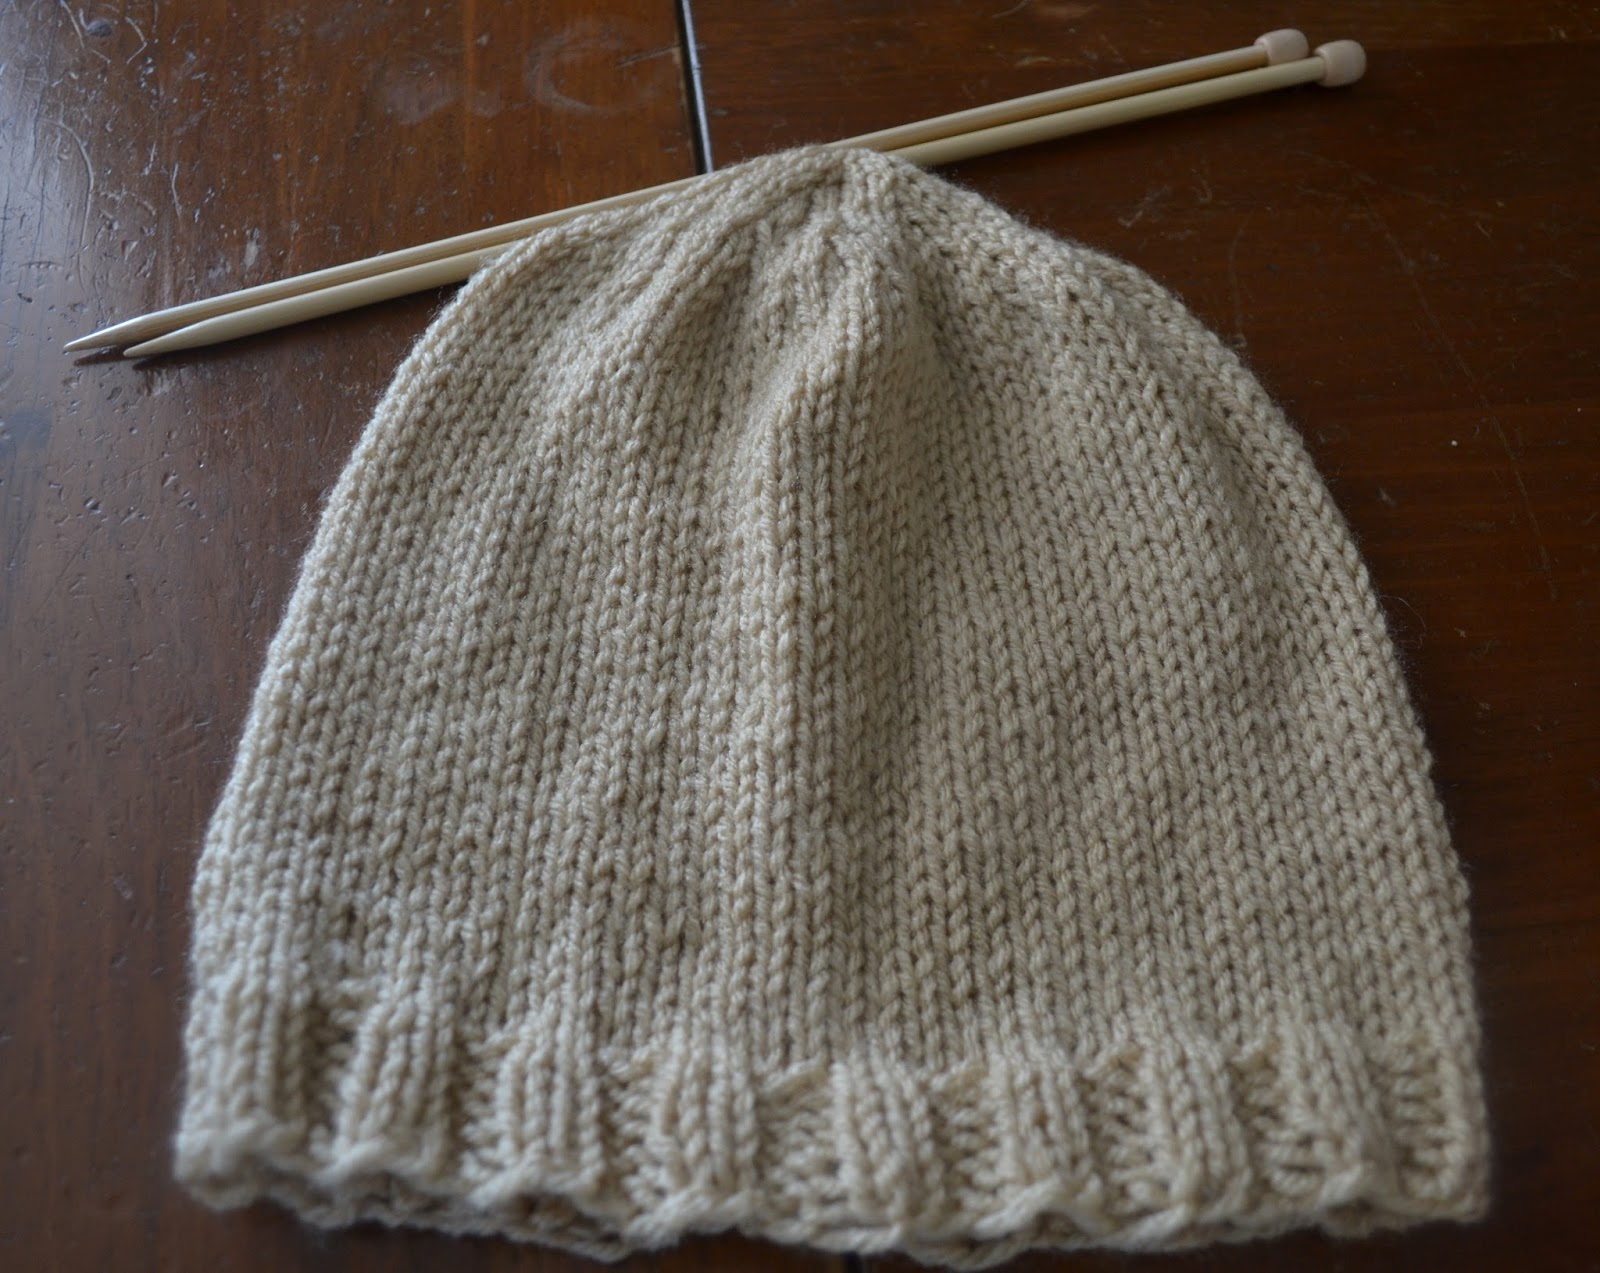 ... of a Knaptime Knitter: FREE KNITTING PATTERN-Basic Mens Beanie